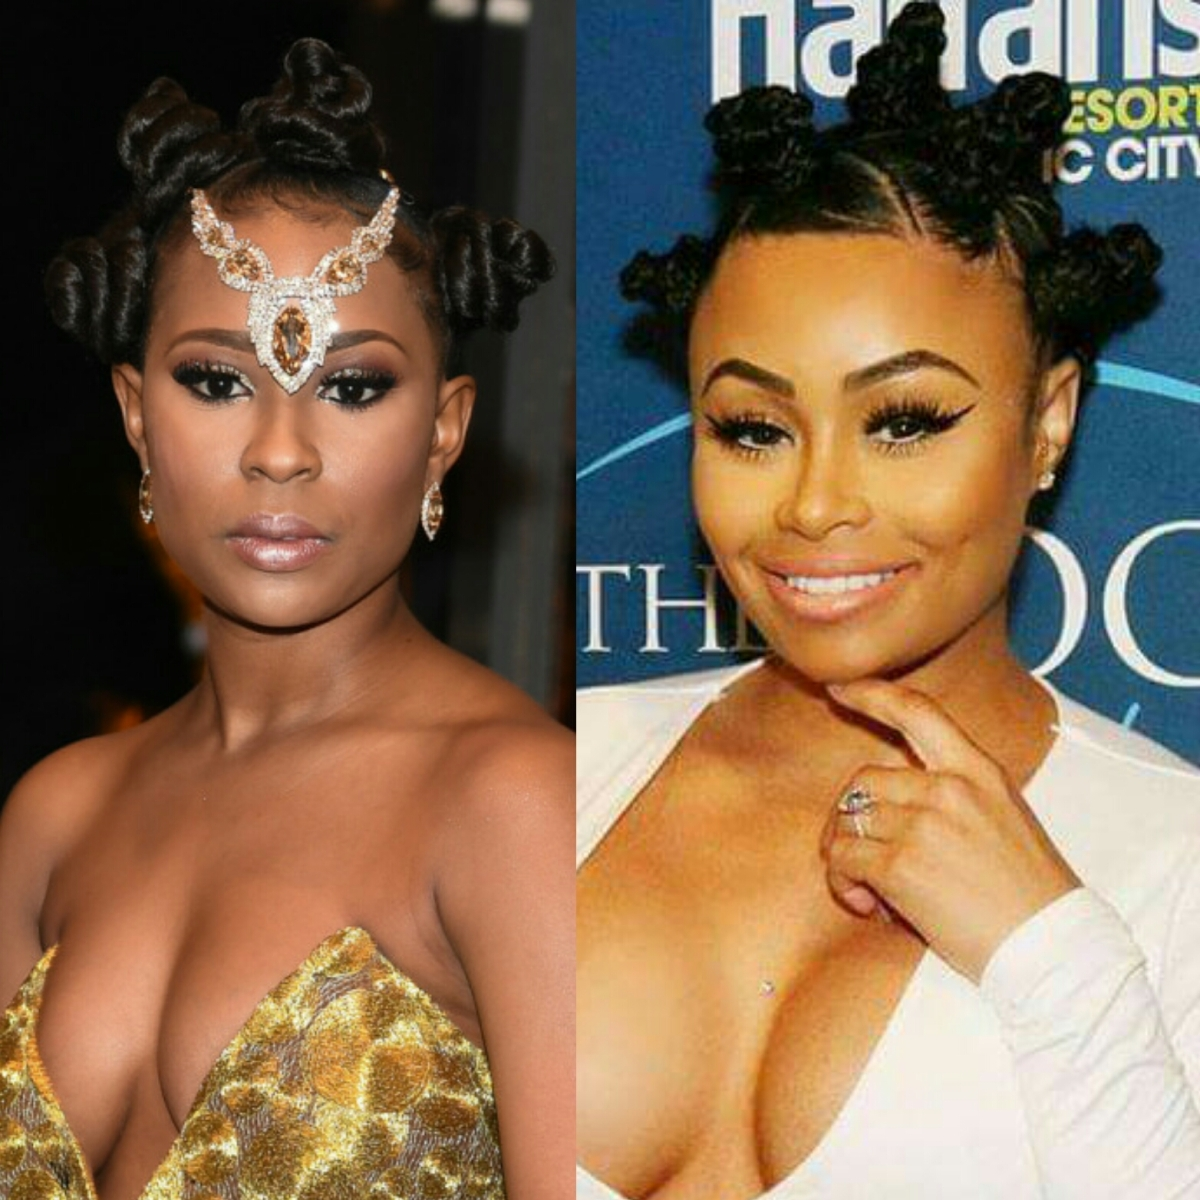 The Bantu Battle, who wore it best Dej Loaf or Blac Chyna?